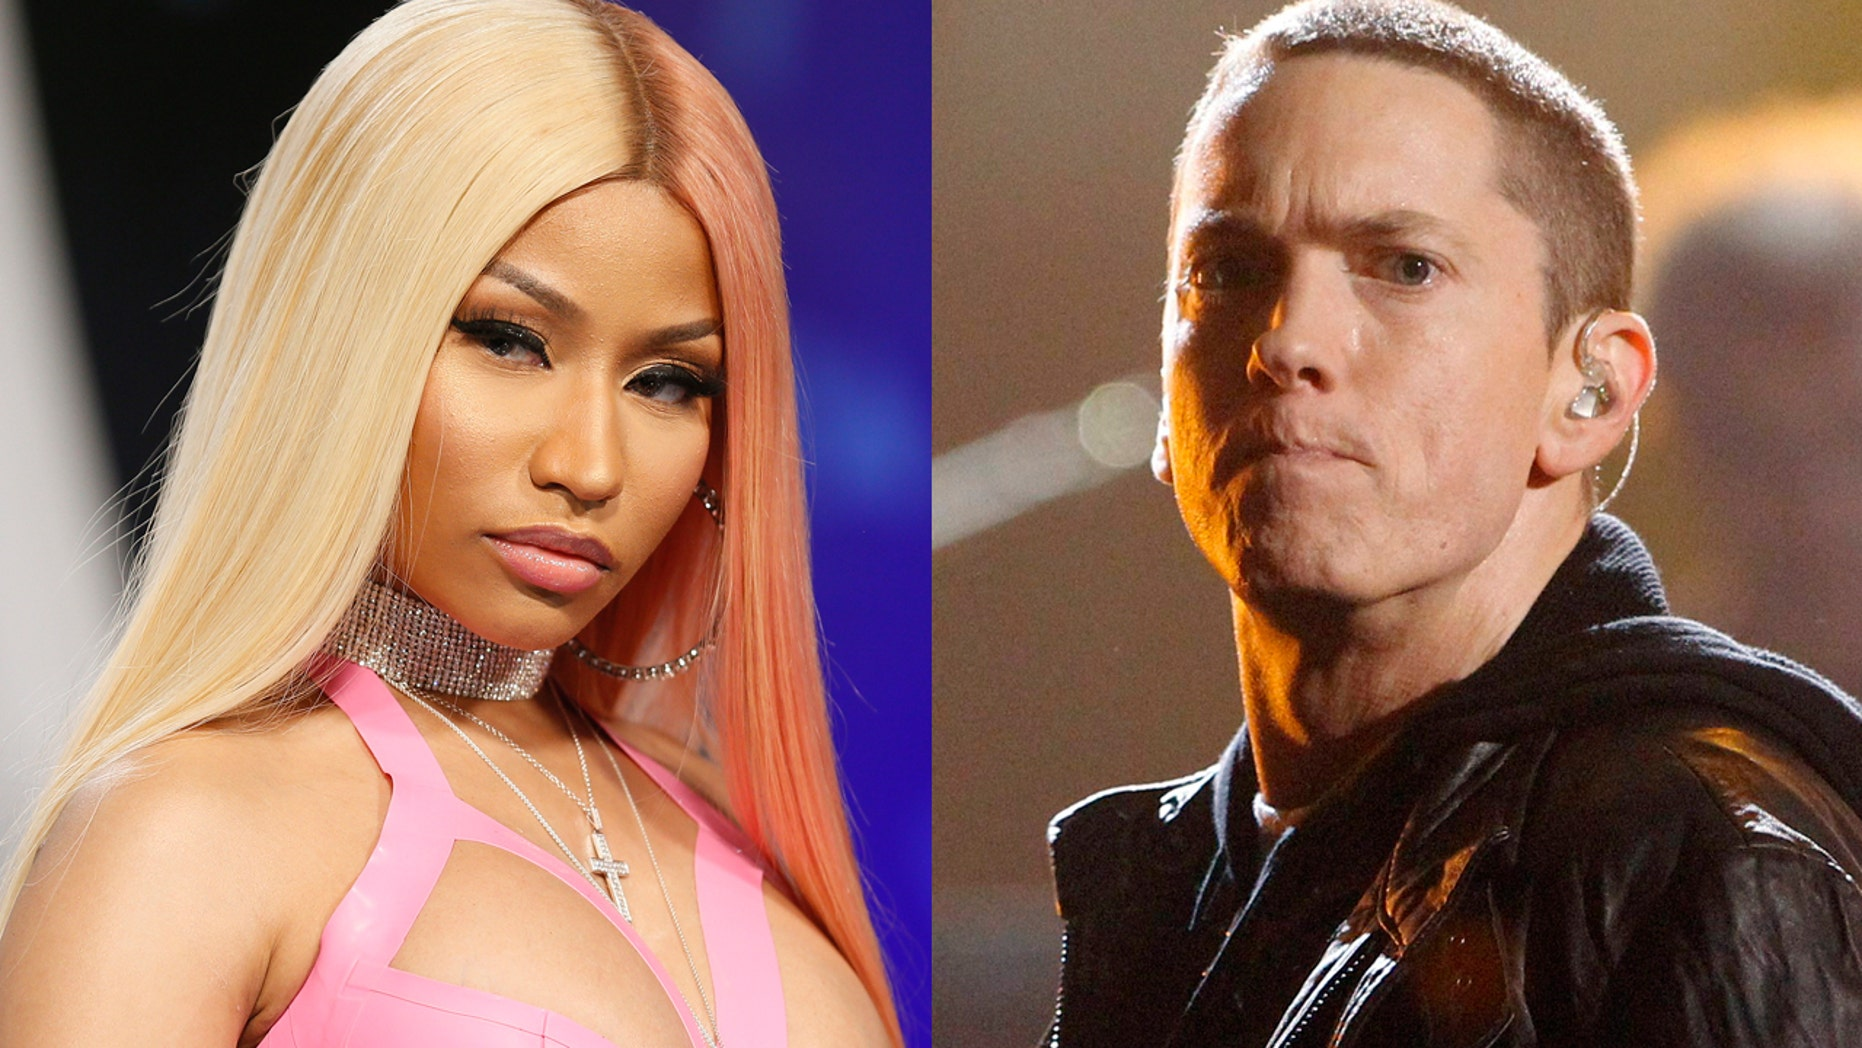 Hip-hop artist and rapper Nicki Minaj claims that she is now dating fellow rapper, Eminem.